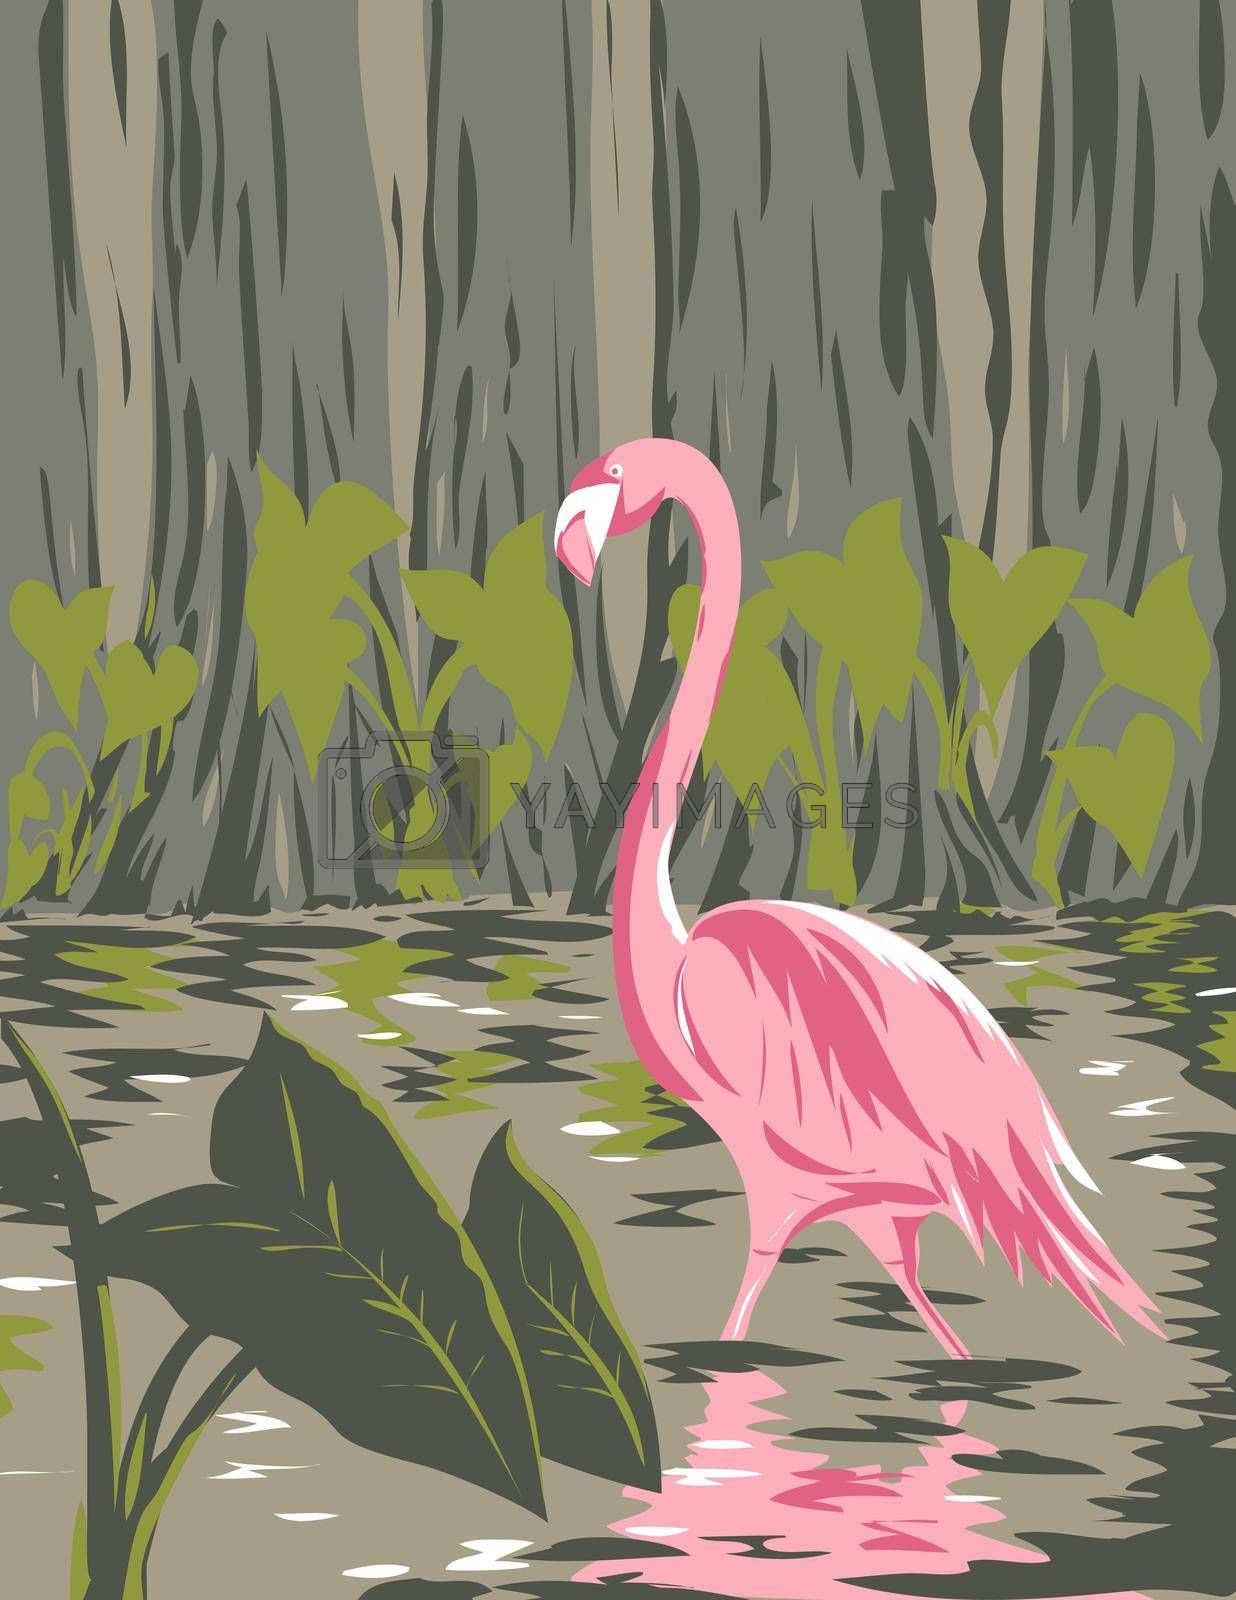 WPA poster art of a flamingo in the wetlands, swamps and marshes of the Everglades National Park in Florida United States in works project administration or federal art project style.